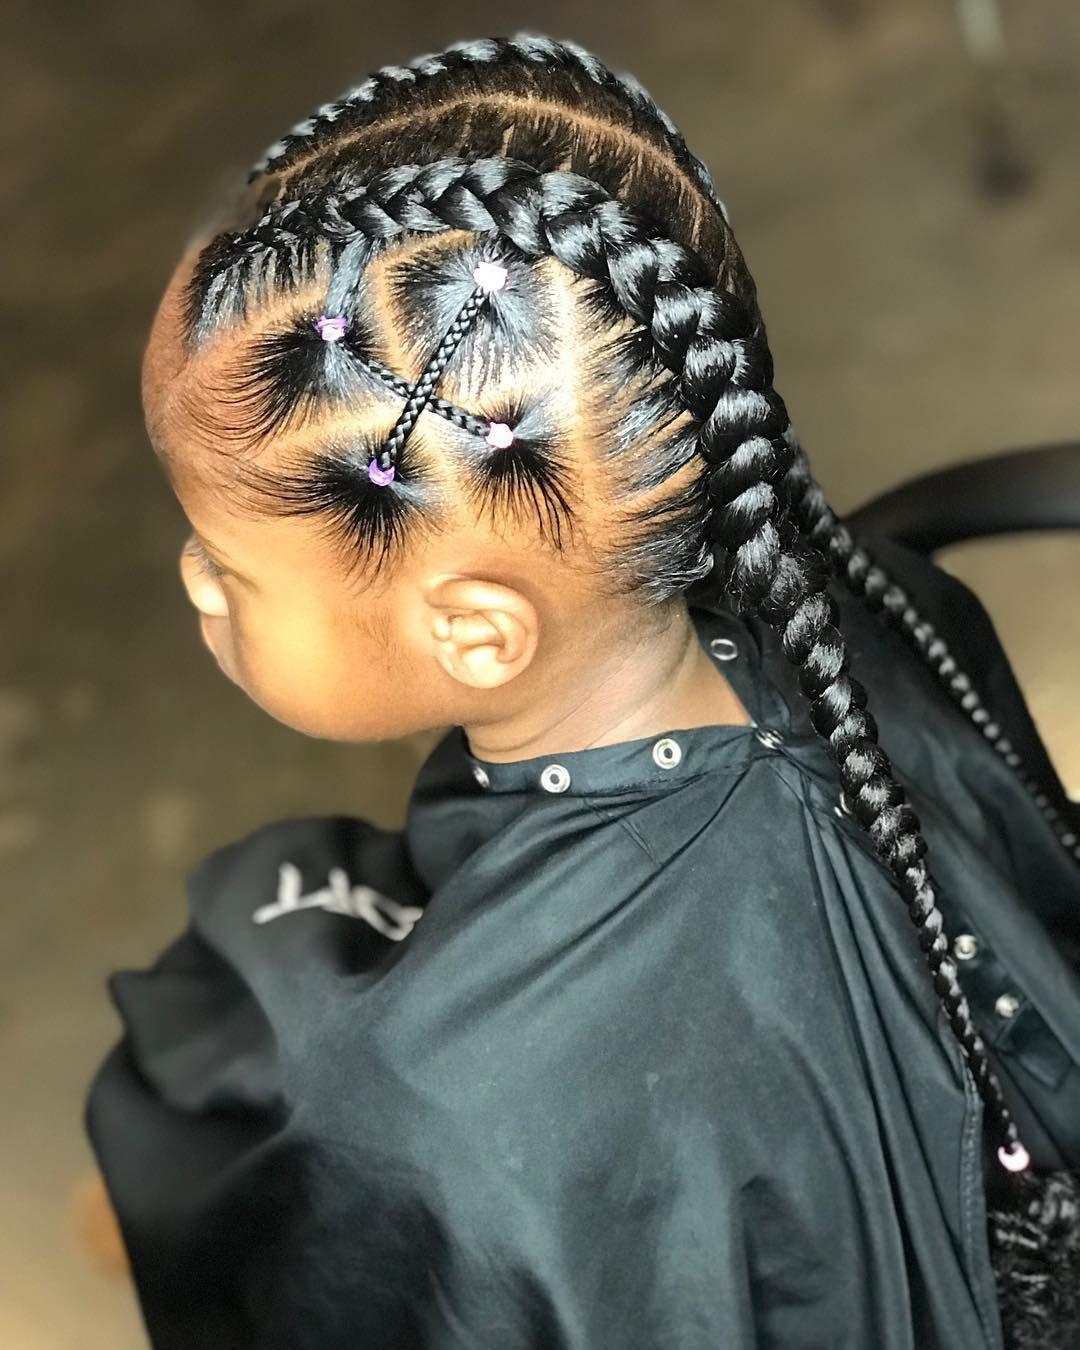 Book Miss Vicky The Loc Loft Stl Vickysbraids Getchusum Feedinbrai Girls Natural Hairstyles Kids Braided Hairstyles Kids Hairstyles